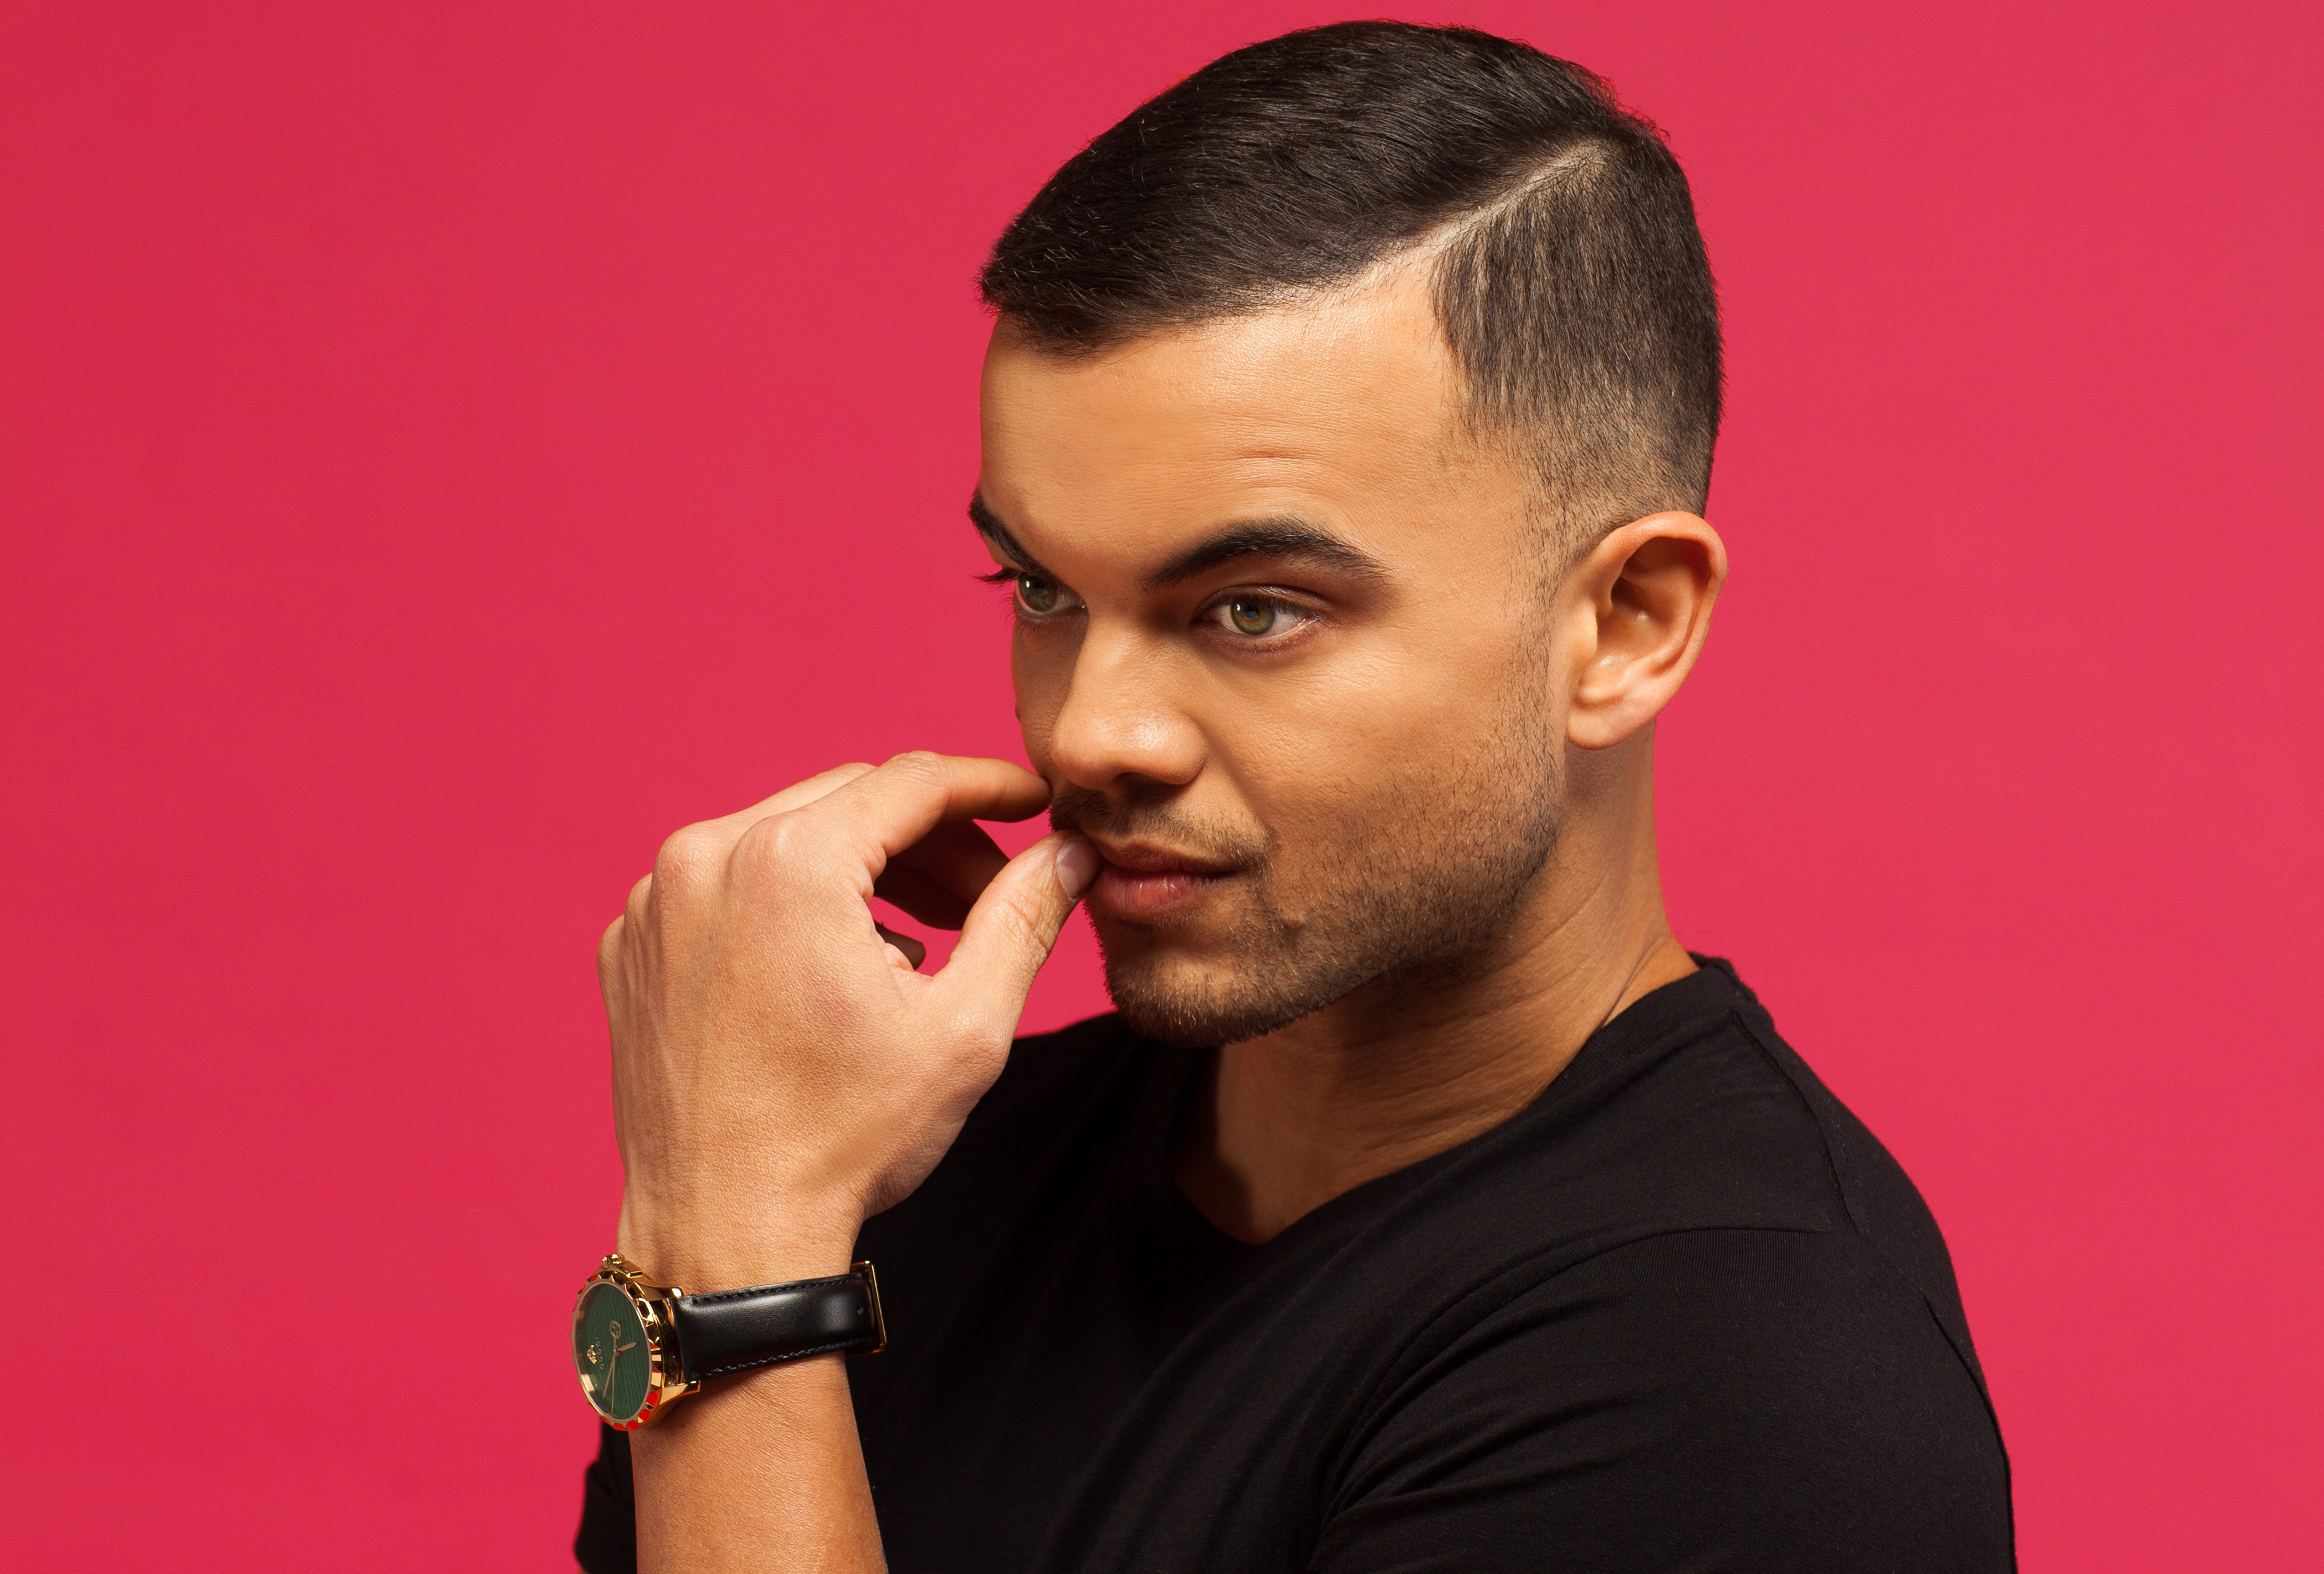 Guy Sebastian's New Album 'Conscious' is Out Now!